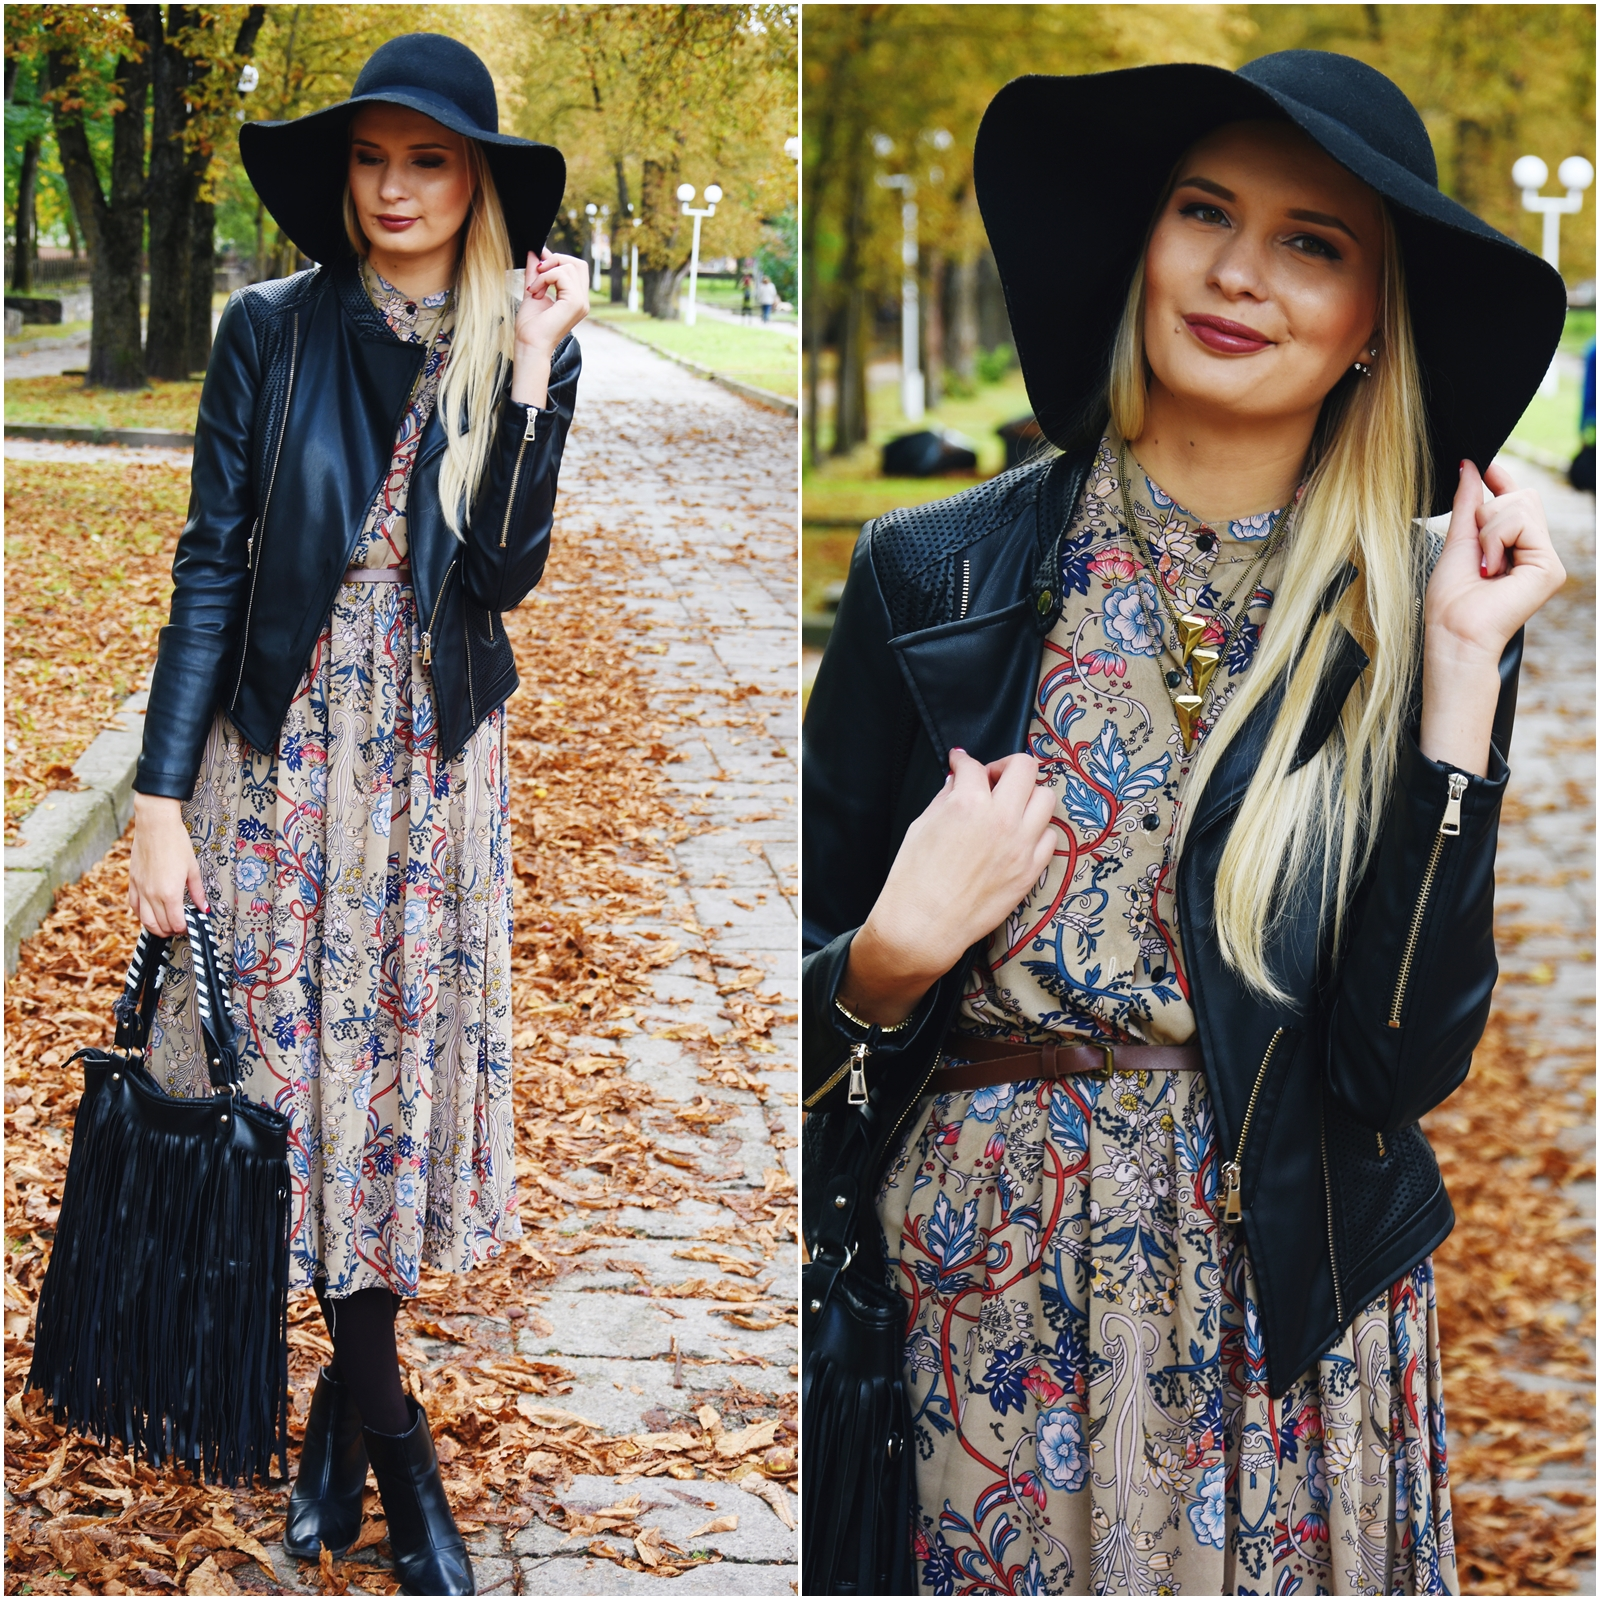 Styling a vintage inspired dress